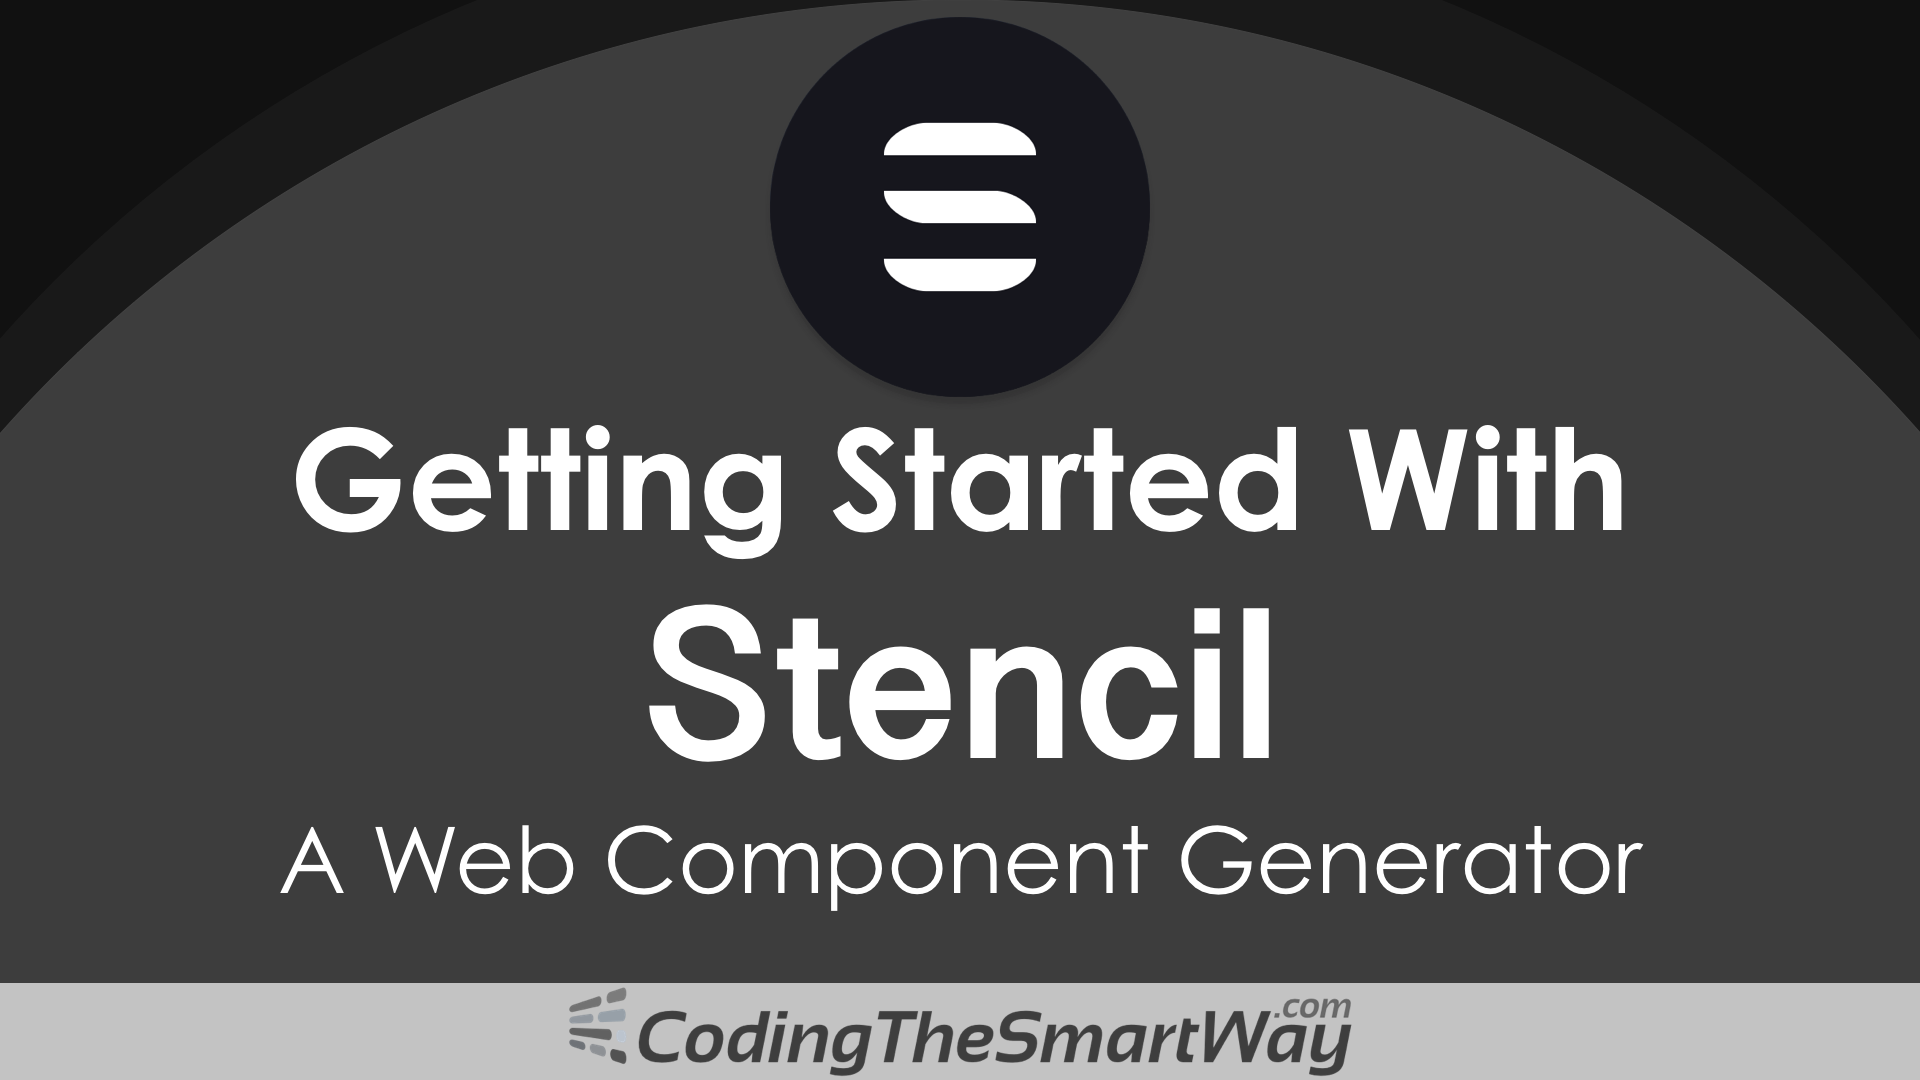 Getting Started With Stencil — A Web Component Generator